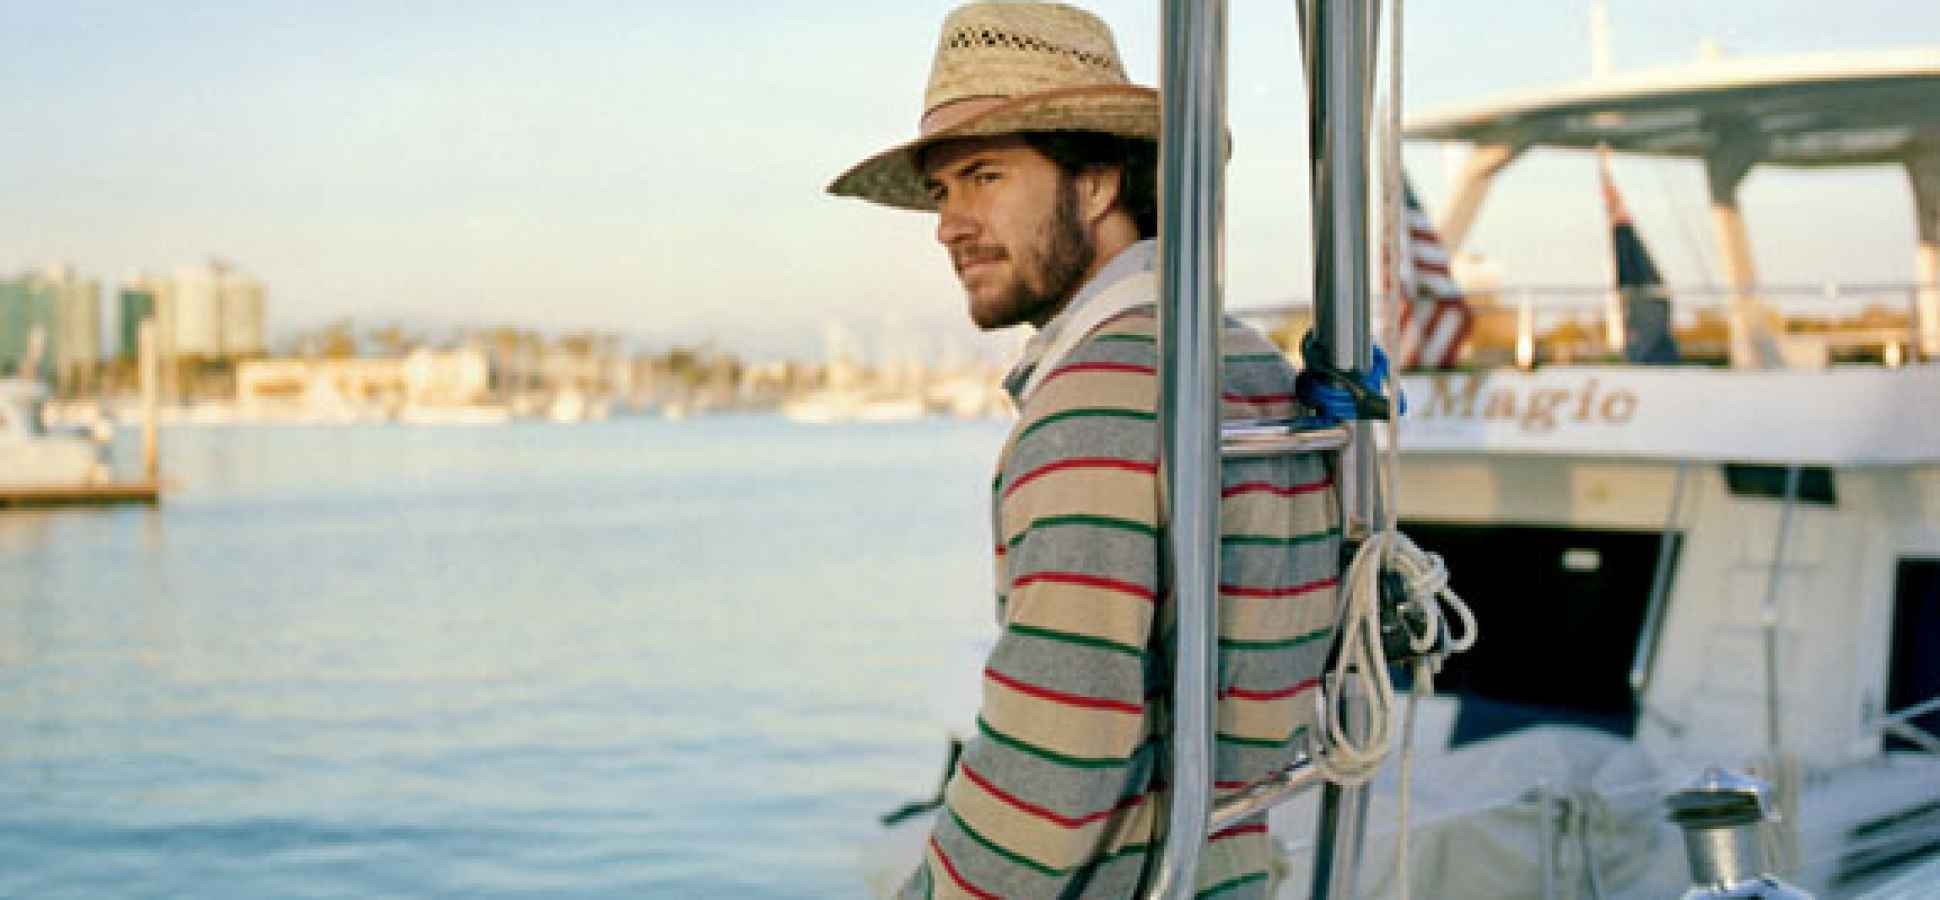 7d11440124 The Way I Work: Blake Mycoskie of Toms Shoes | Inc.com